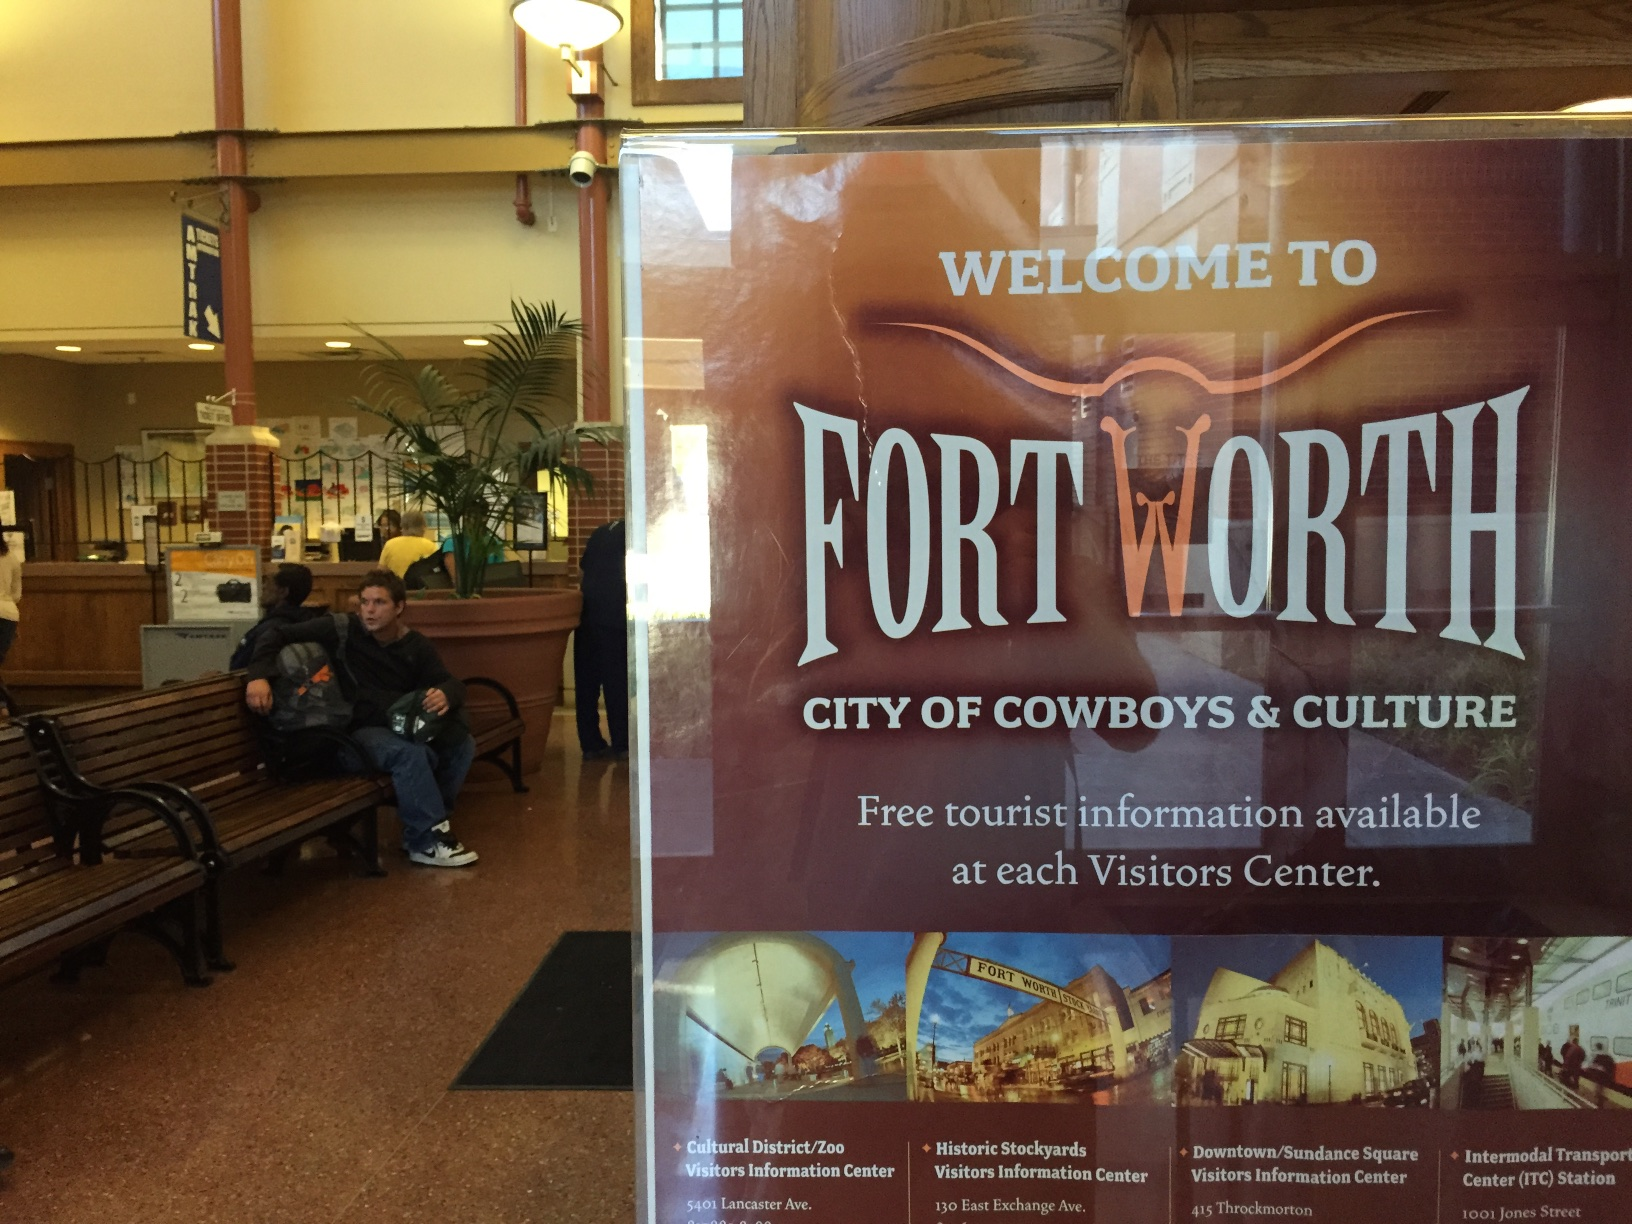 The Amtrak station in the City of Cowboys and Culture. Or something like that.